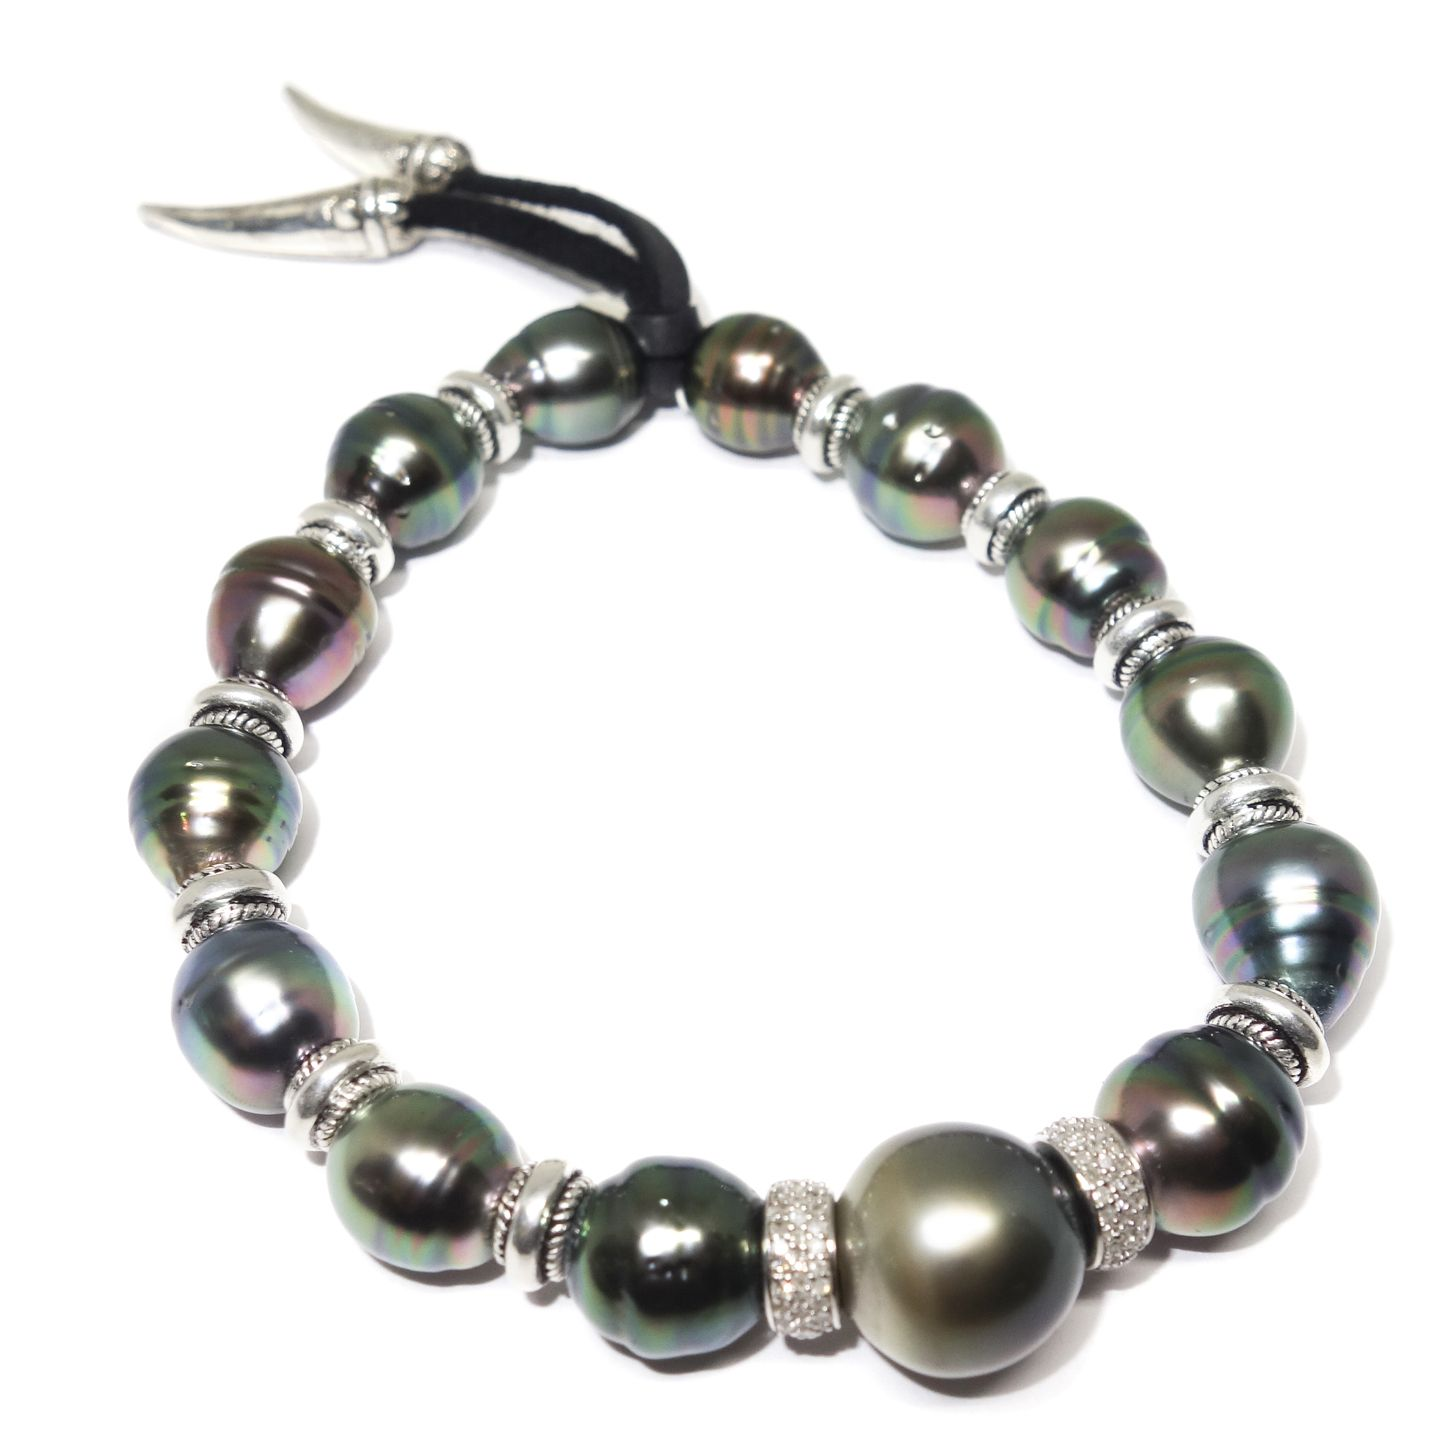 Diamond And South Sea Pearl Men S Bracelet Men S Bracelets Lazaro Soho Bracelets For Men Bracelets South Sea Pearls